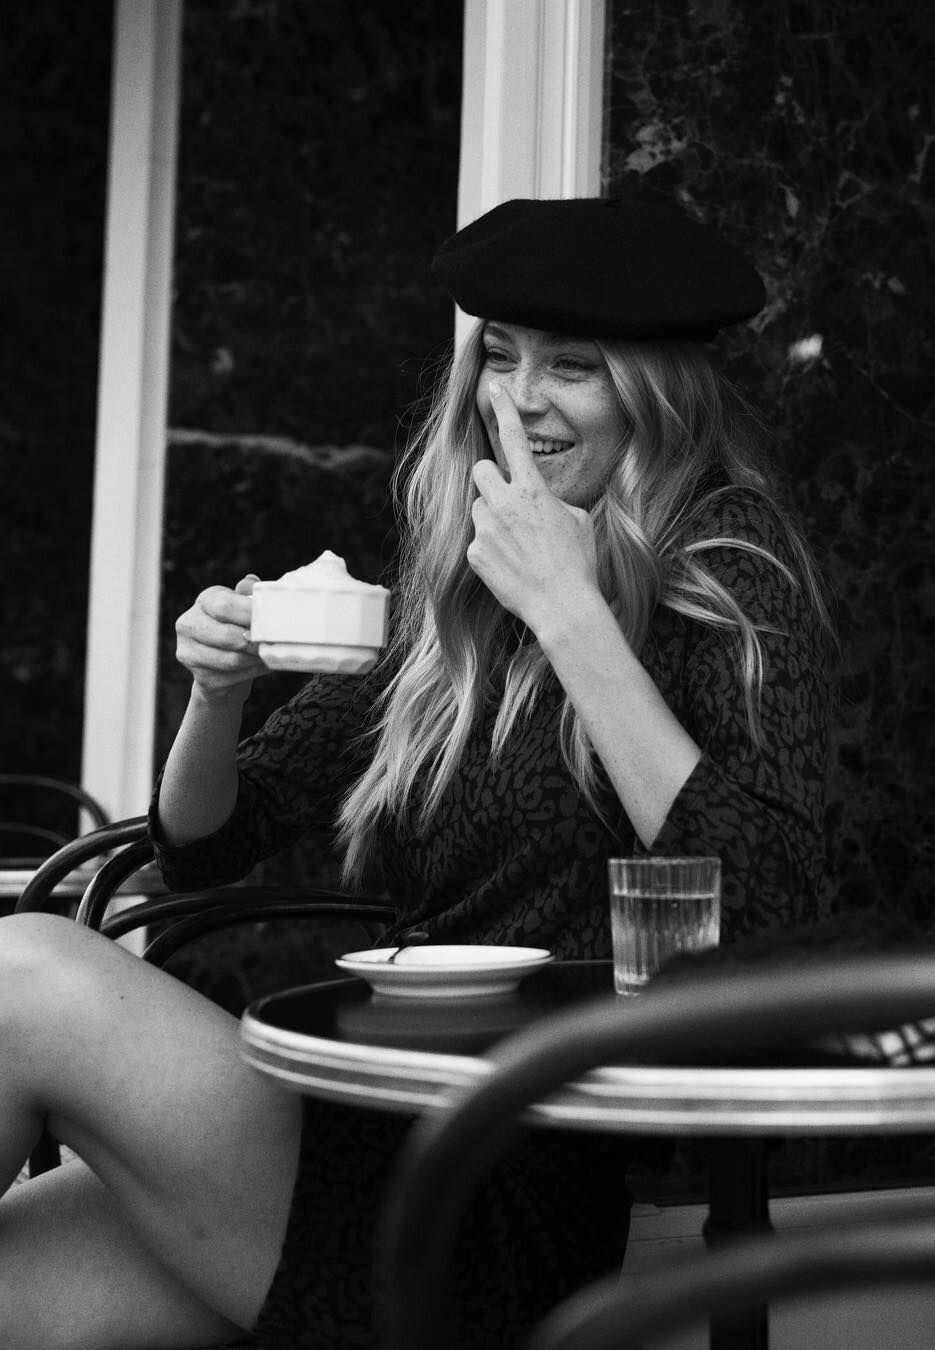 Black and white photo city cafe hats candid paris pictures